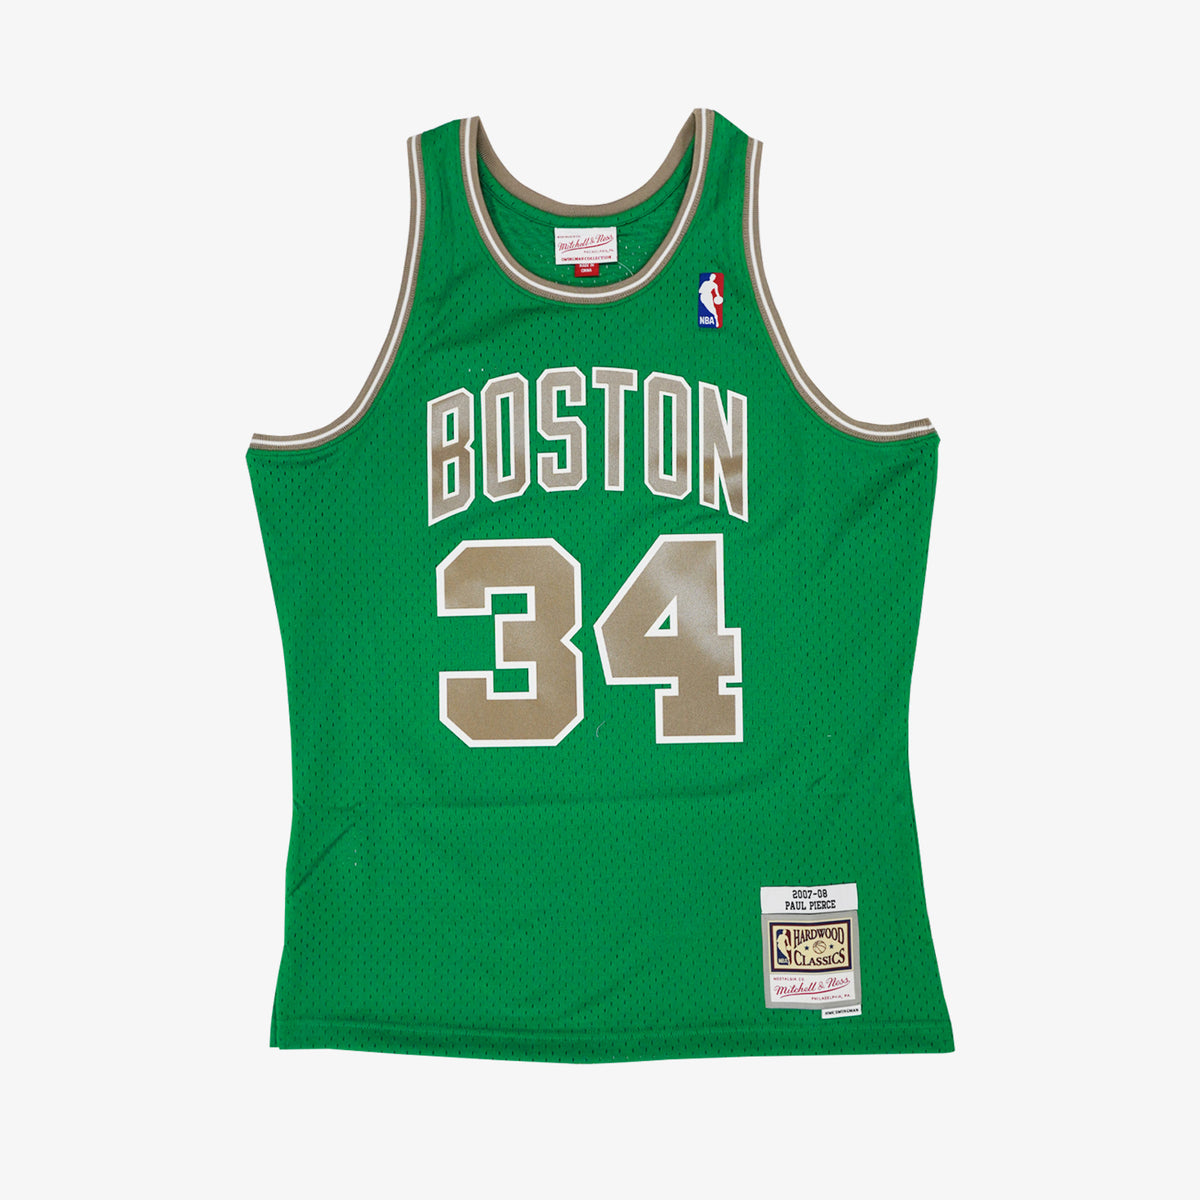 Paul Pierce Boston Celtics 07-08 St Patrick's HWC Swingman Jersey - Green